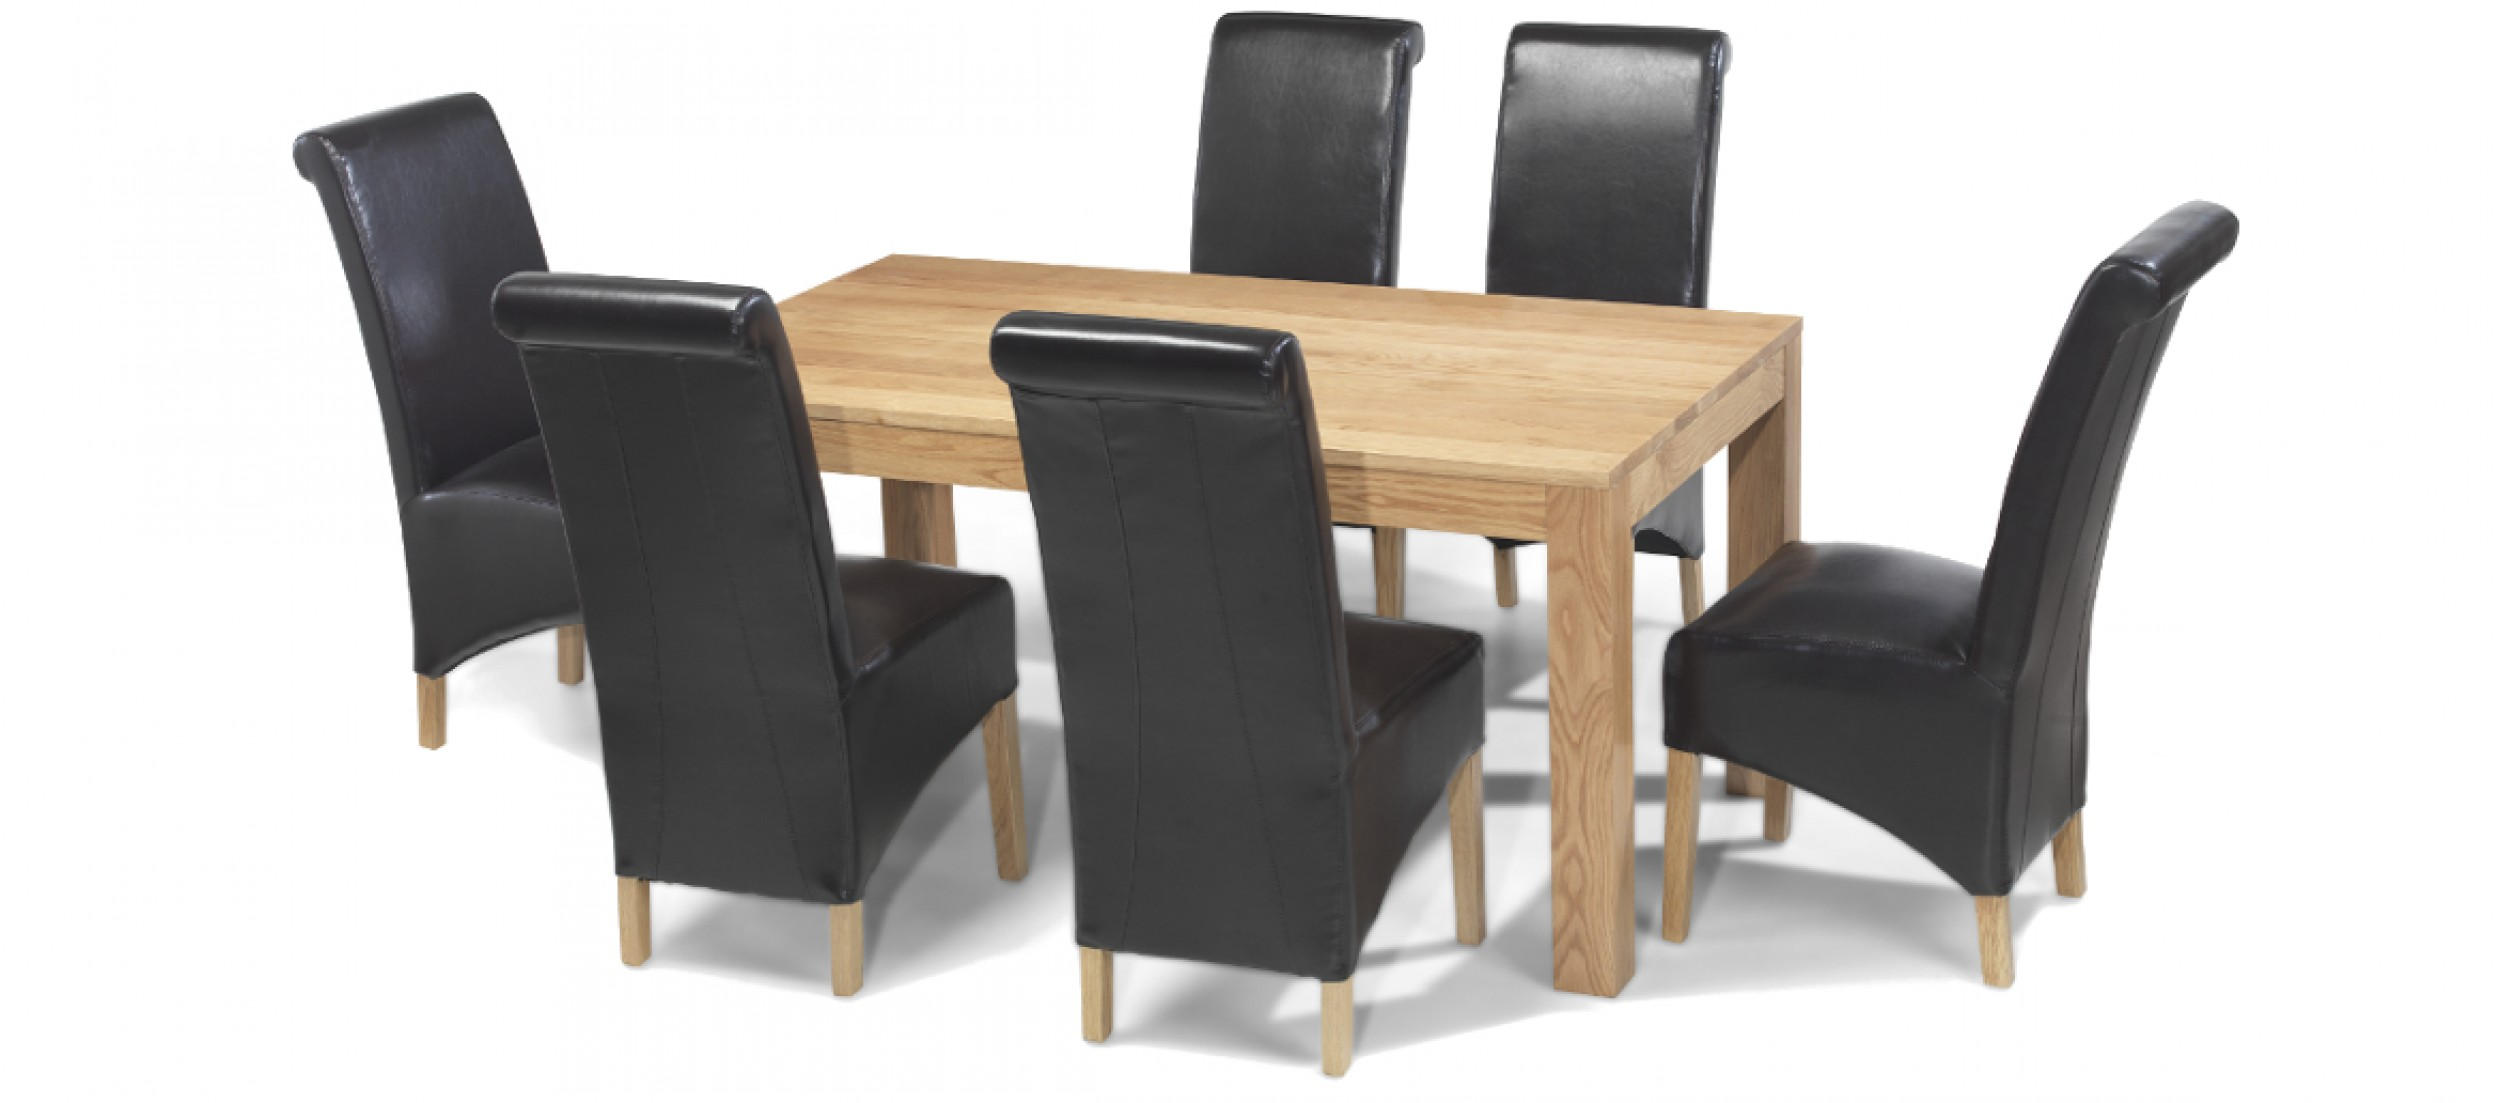 Cube oak 160 cm dining table and 6 chairs quercus living for Table 6 chaises